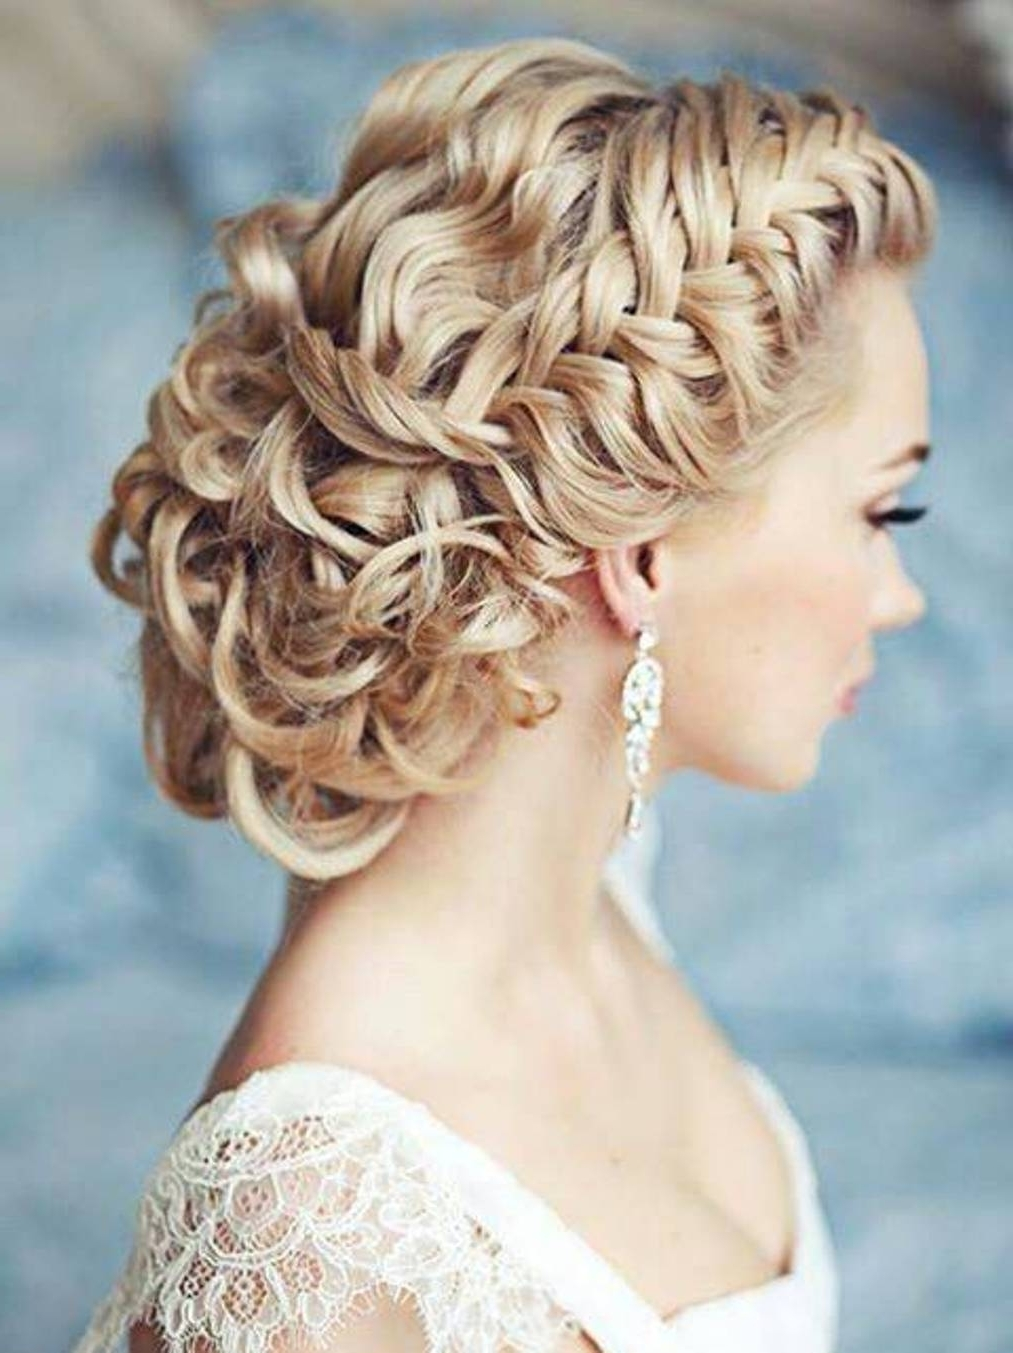 2018 Wedding Hairstyles With Braids Inside Wedding Hairstyles For Braids Stunning Braided Wedding Hairstyles (View 2 of 15)